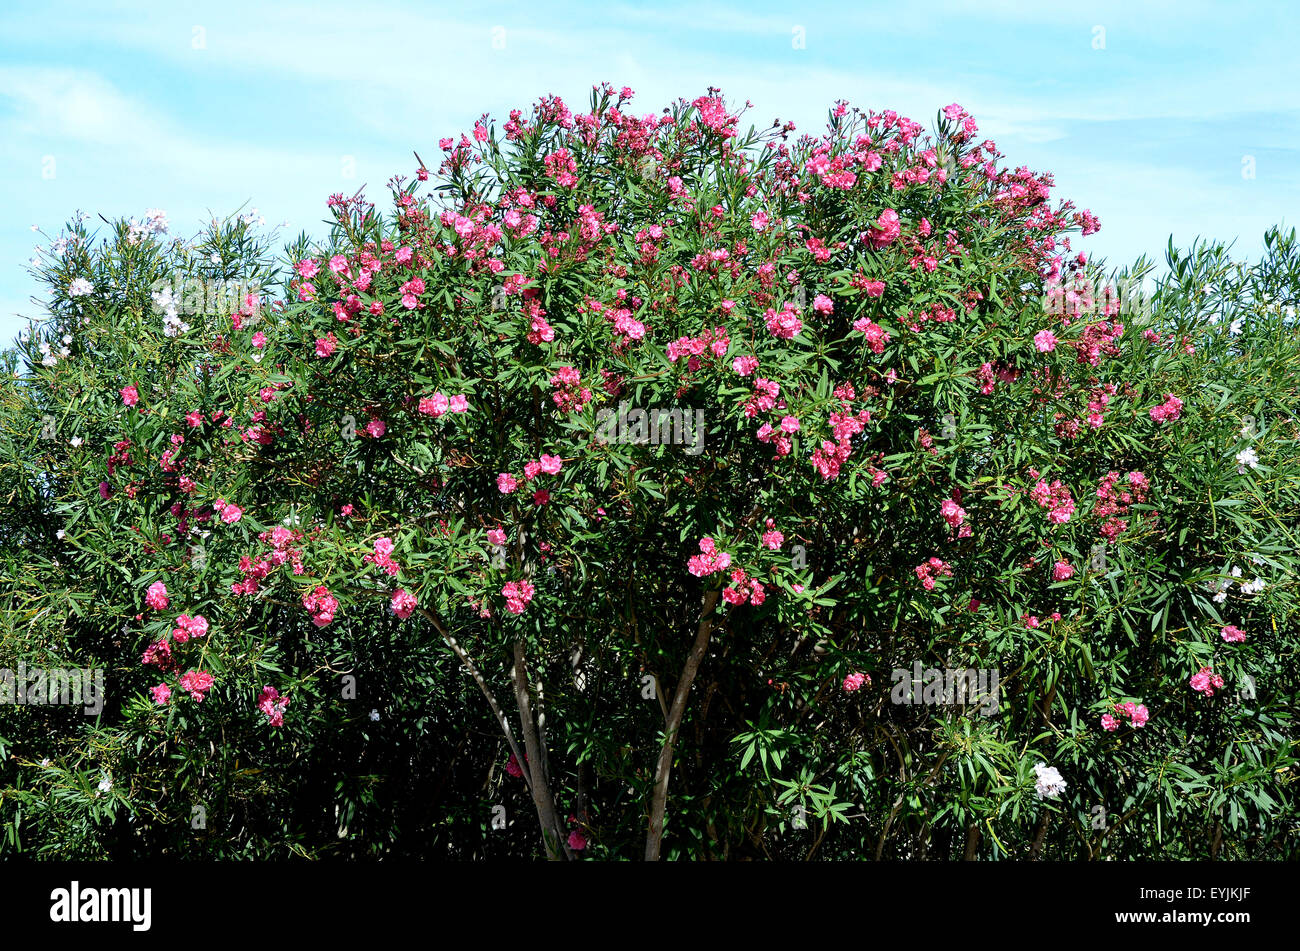 sardinien ita ly baum oleander nerium oleander stockfoto bild 85847735 alamy. Black Bedroom Furniture Sets. Home Design Ideas